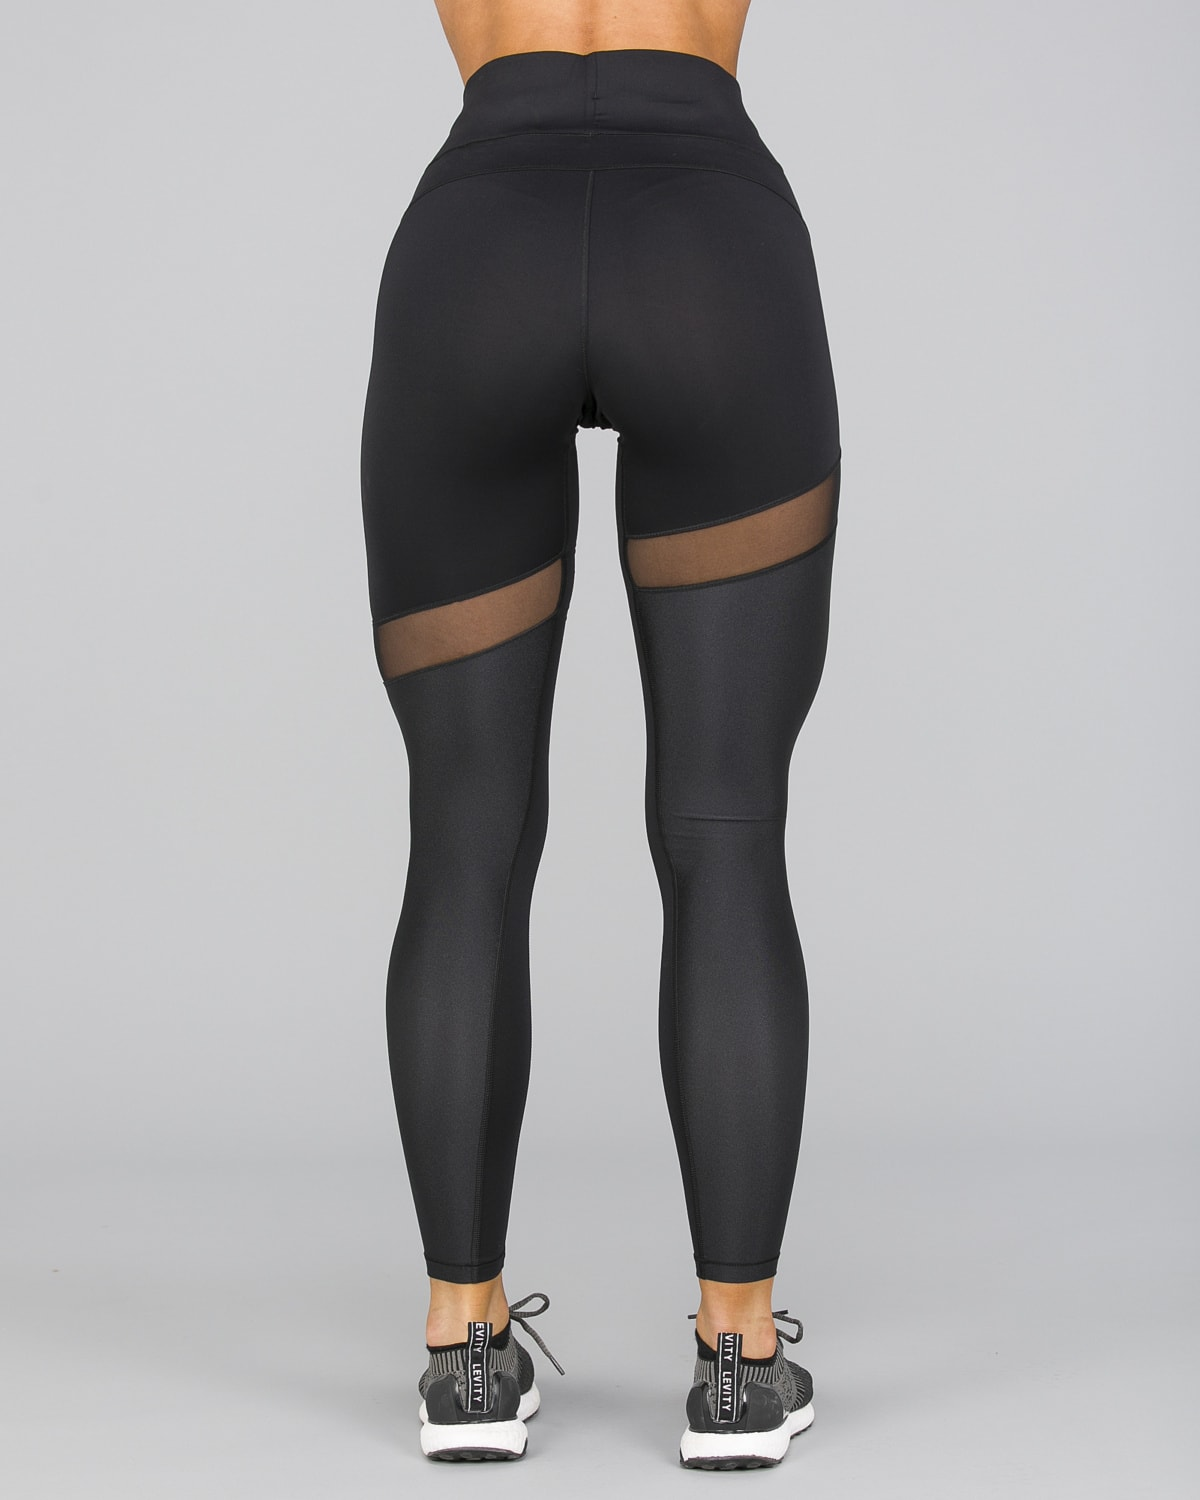 Casall Golden Lux 7:8 Tights8